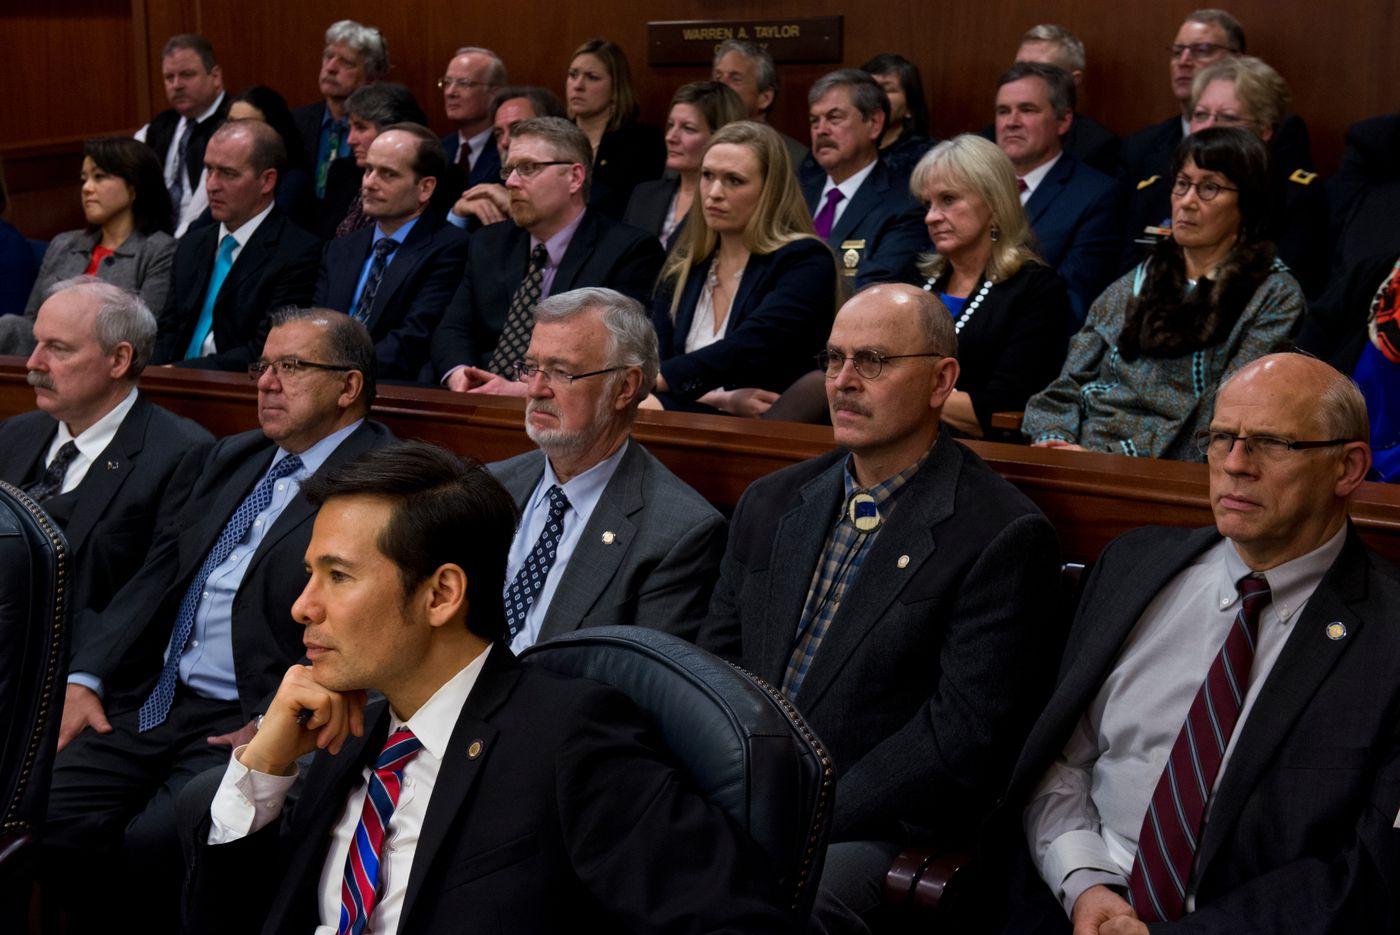 Members of the Alaska Legislature, as well as members of Gov. Bill Walker's Cabinet, staff and family, listen to the State of the State speech.